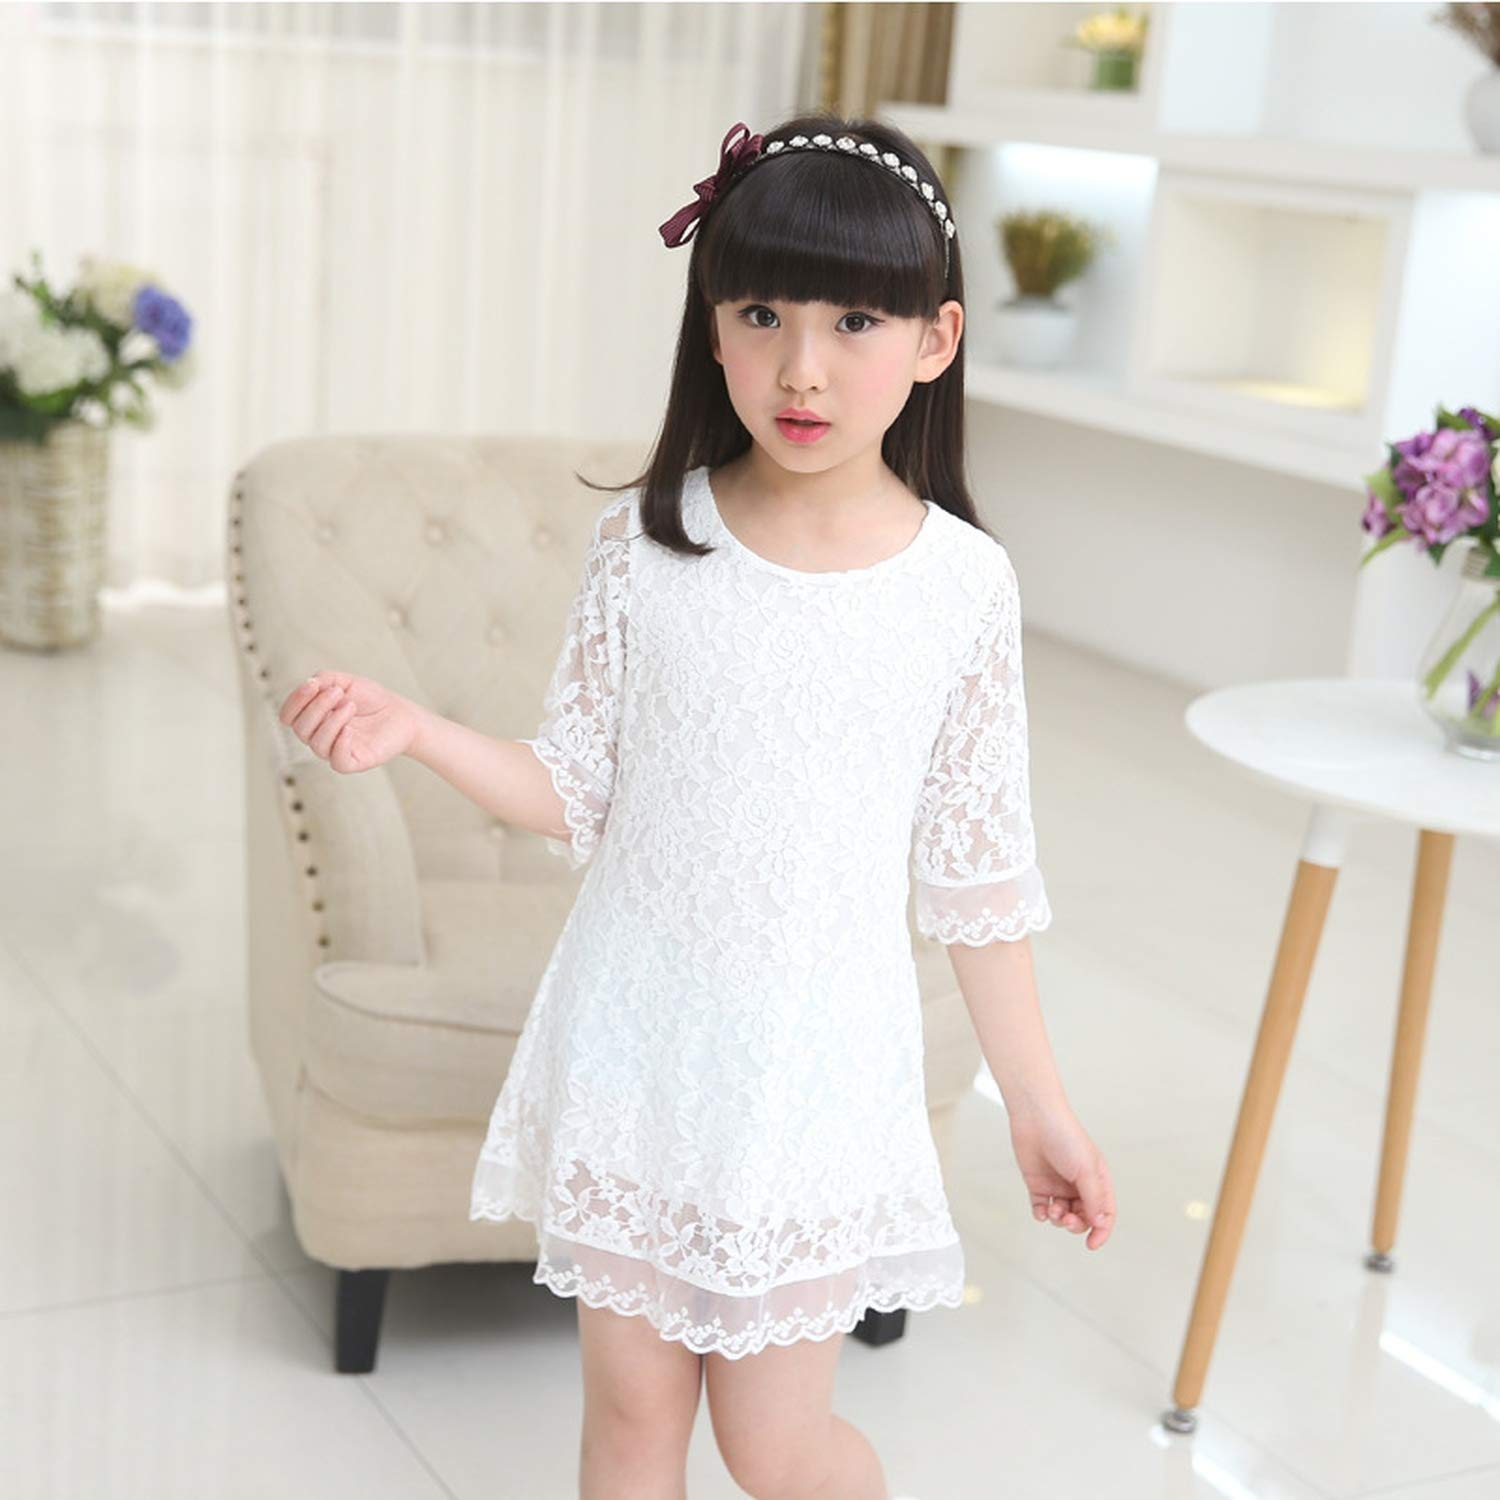 Kids 2018 Summer Autumn Lace Dress White Large Size Girls Dress Princess 3 4 6 8 10 12 14 16 18 Years Old Baby Girl,White,7 by Gooding Day (Image #6)